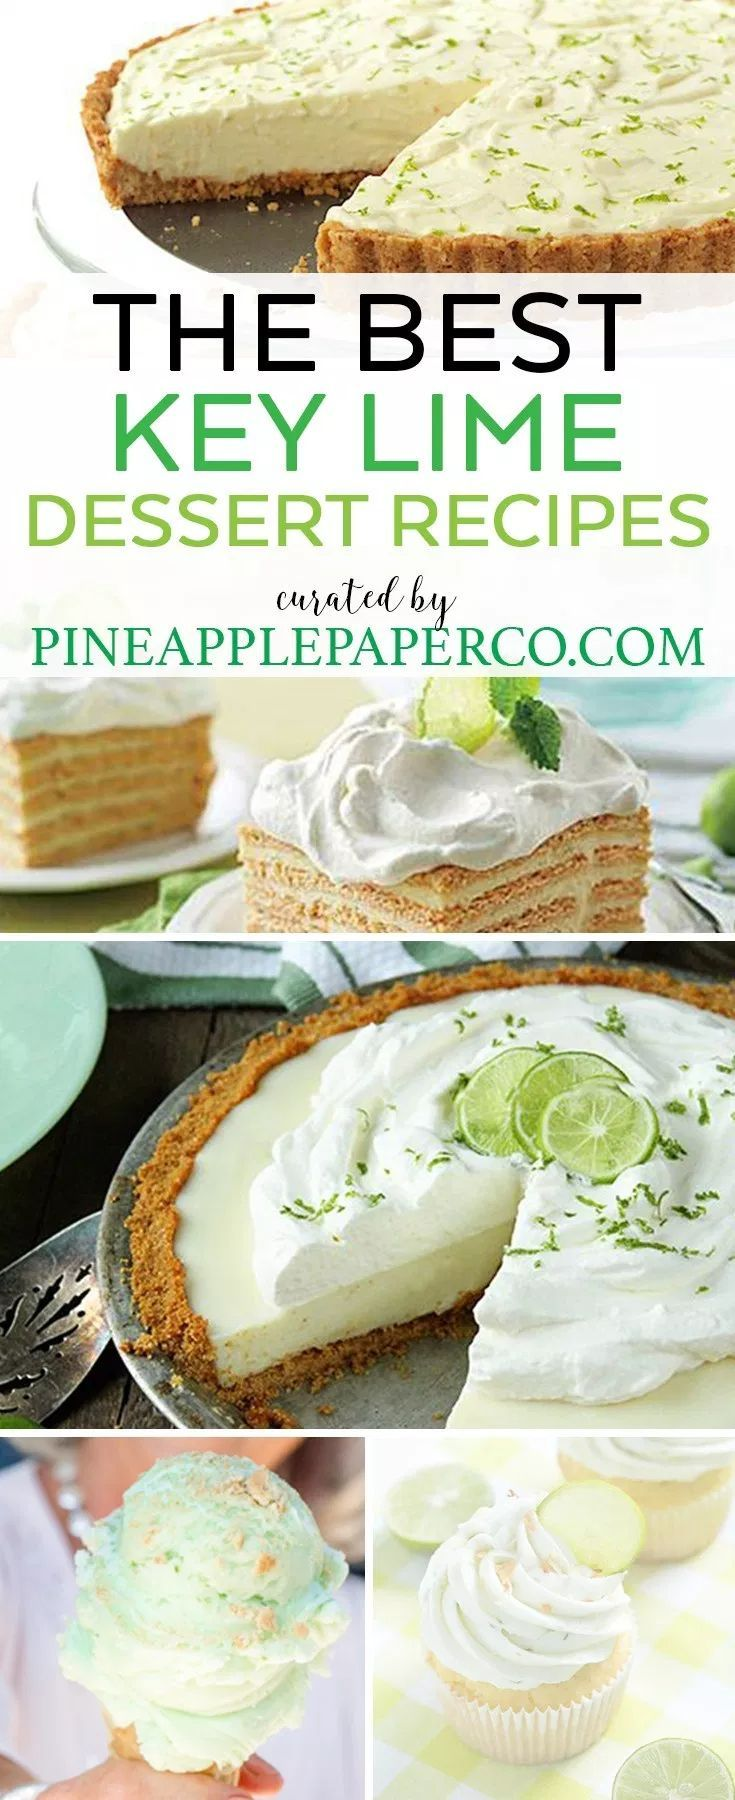 The Best Key Lime Recipes to Make for Summer Find the BEST Key Lime Dessert Recipes curated by Pineapple Paper Co.